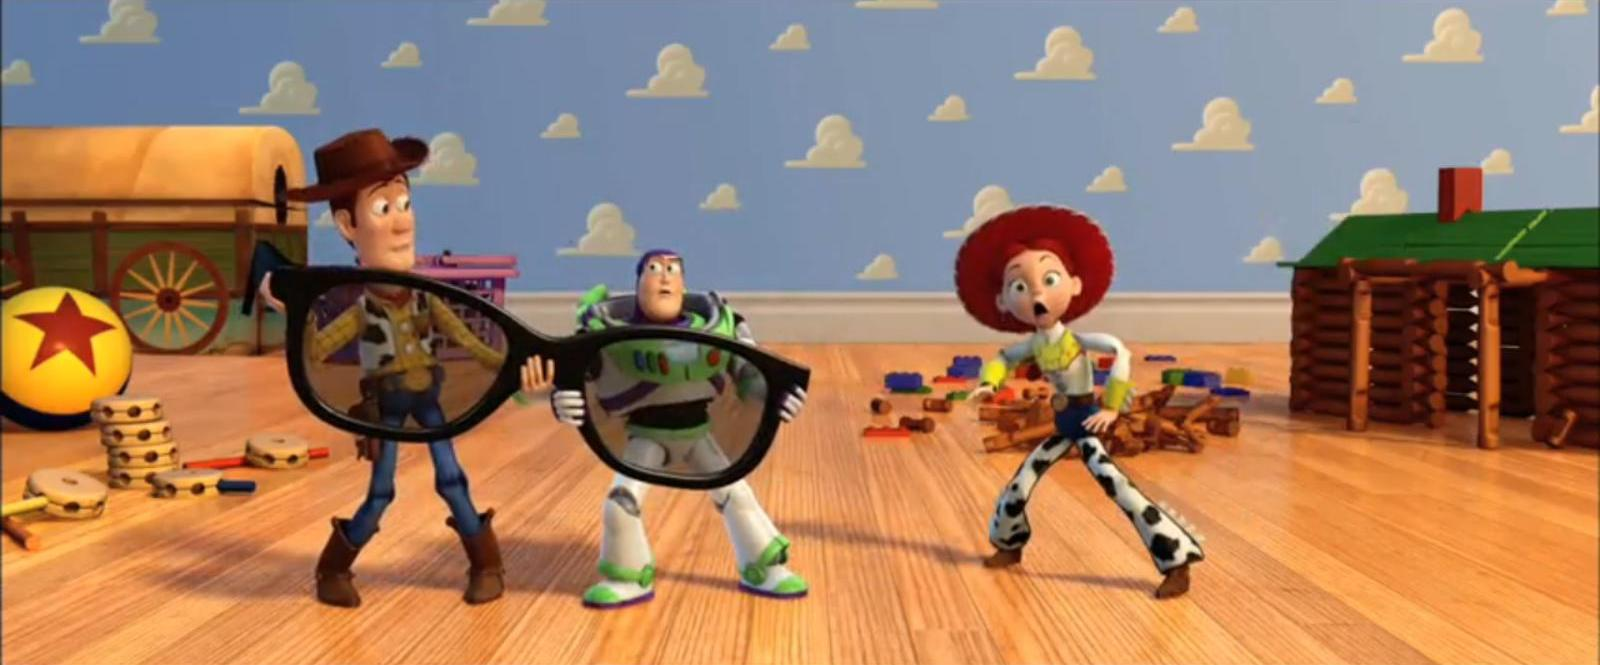 Movie, Actually: Toy Story 1 & 2 3-D Double Feature: Review